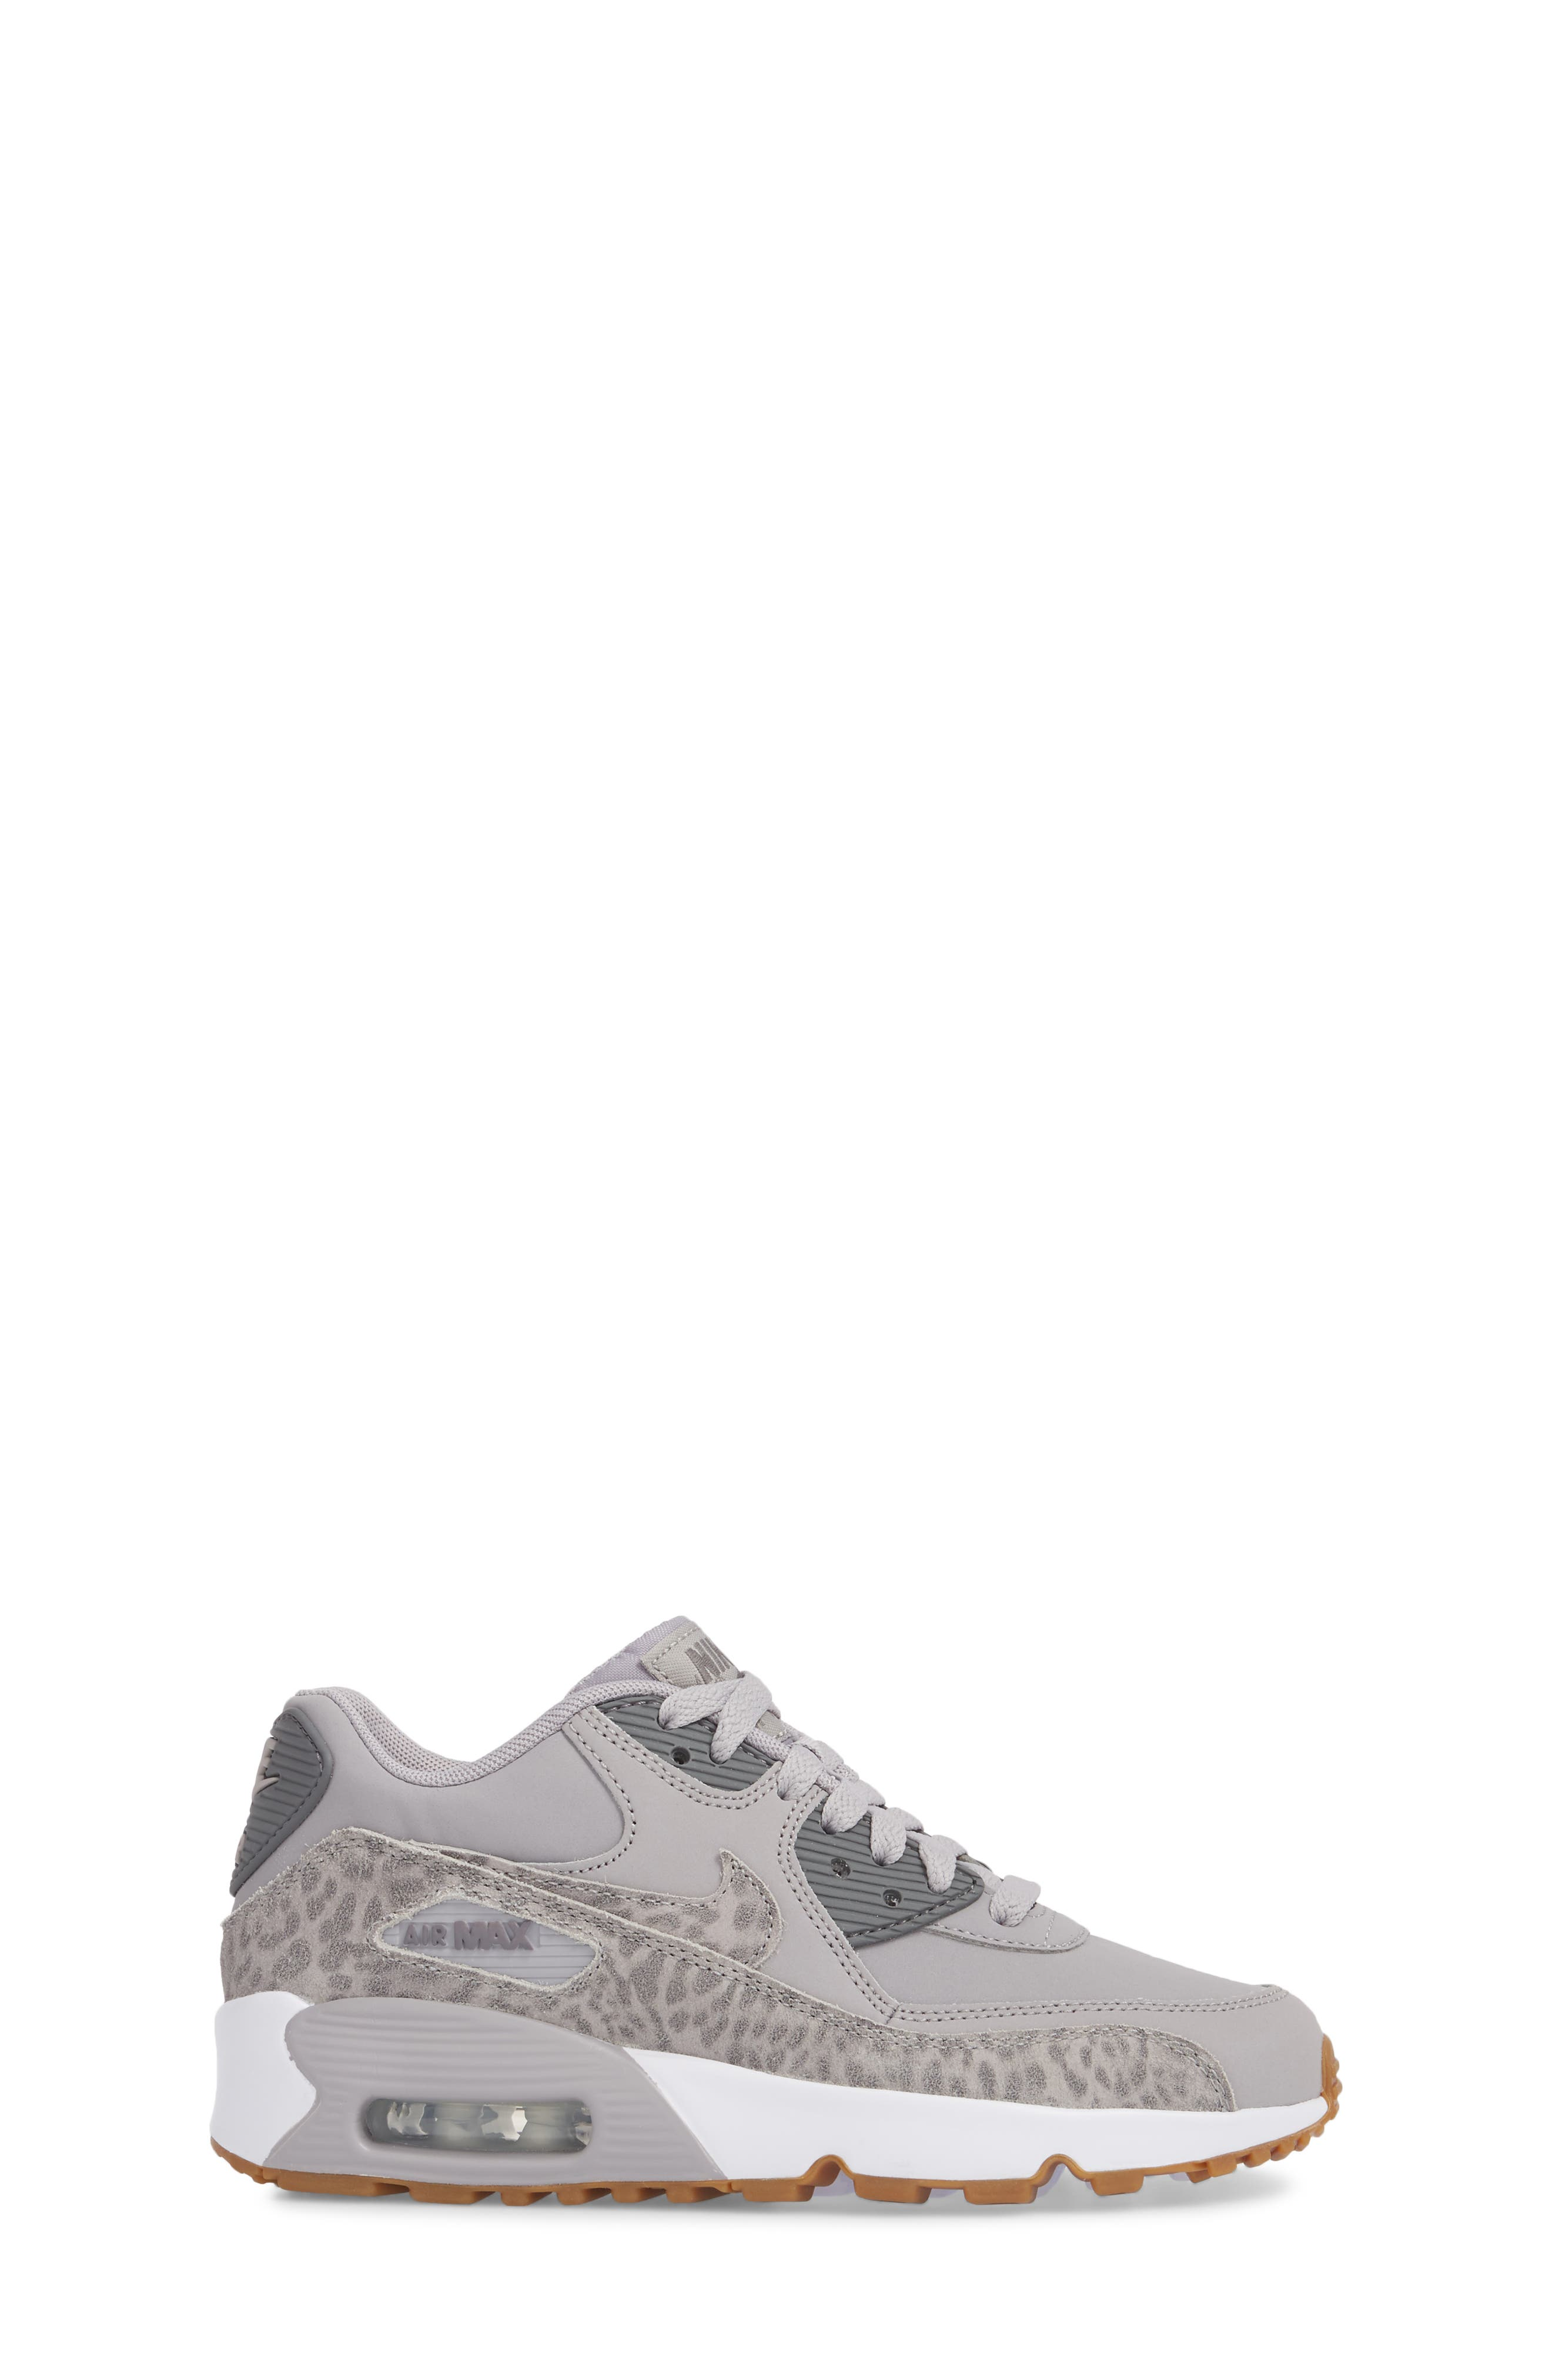 Air Max 90 Leather Sneaker,                             Alternate thumbnail 3, color,                             Atmosphere Grey/ Smoke/ White